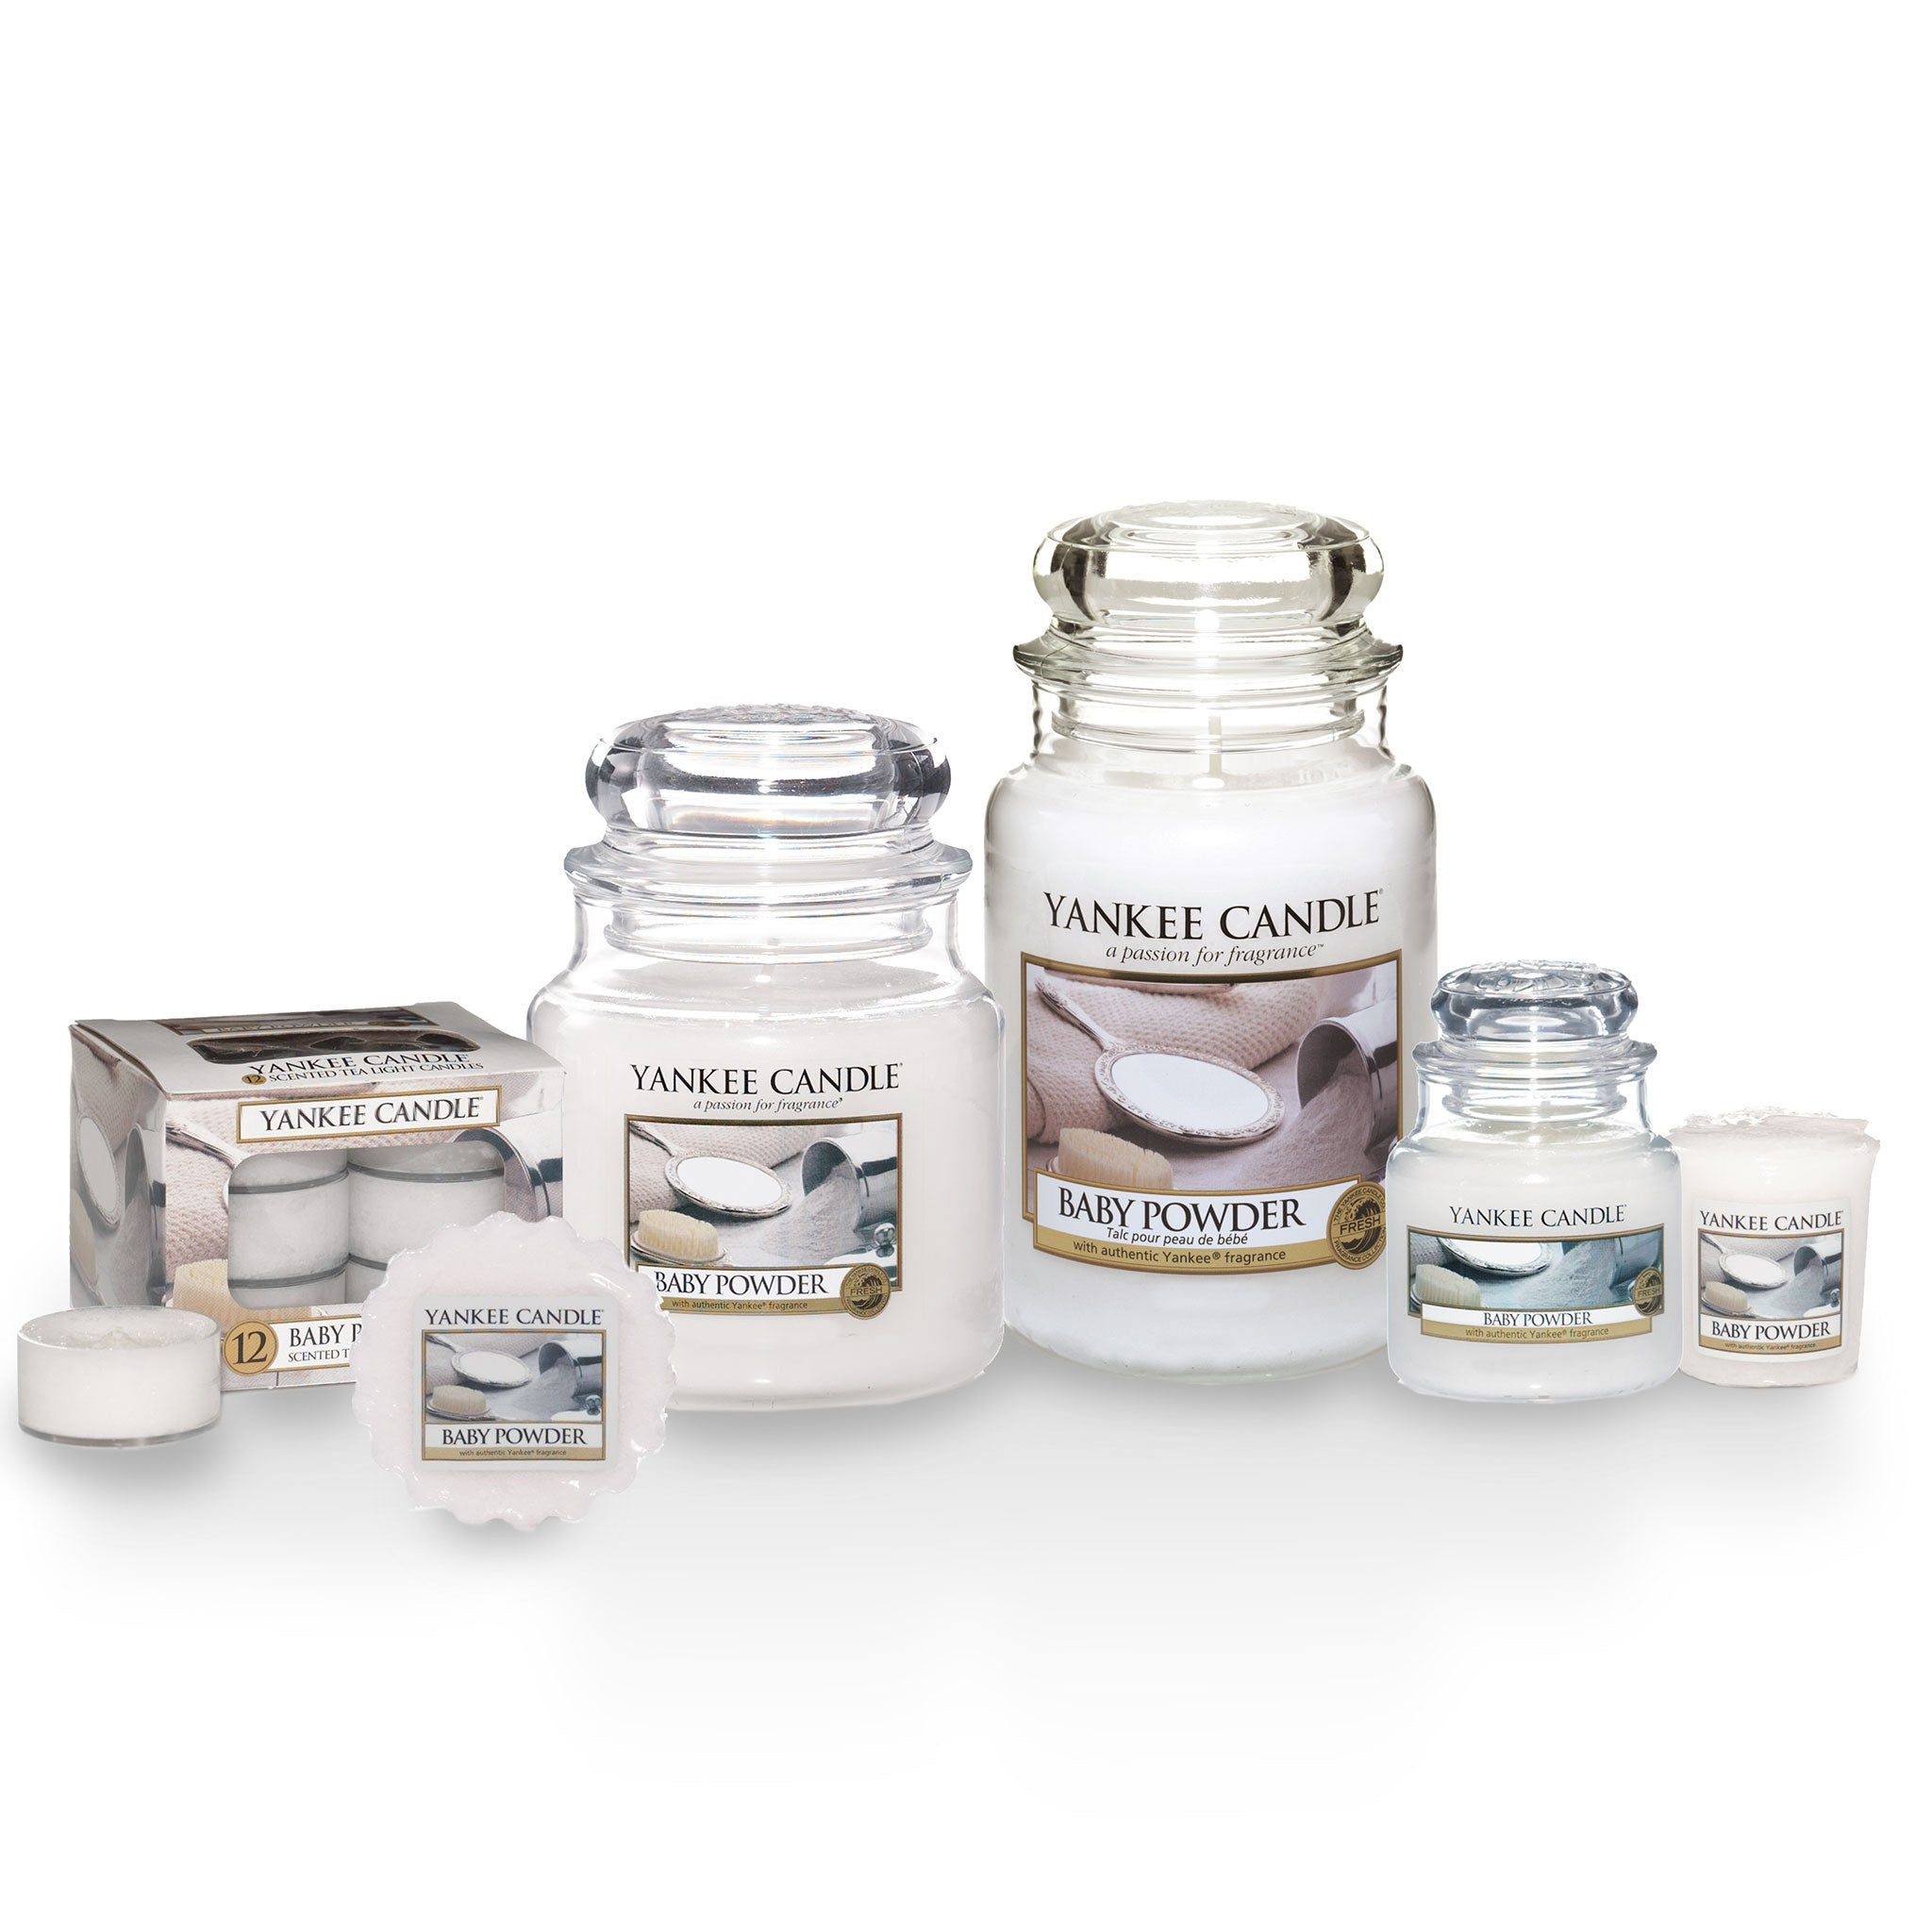 BABY POWDER -Yankee Candle- Tart